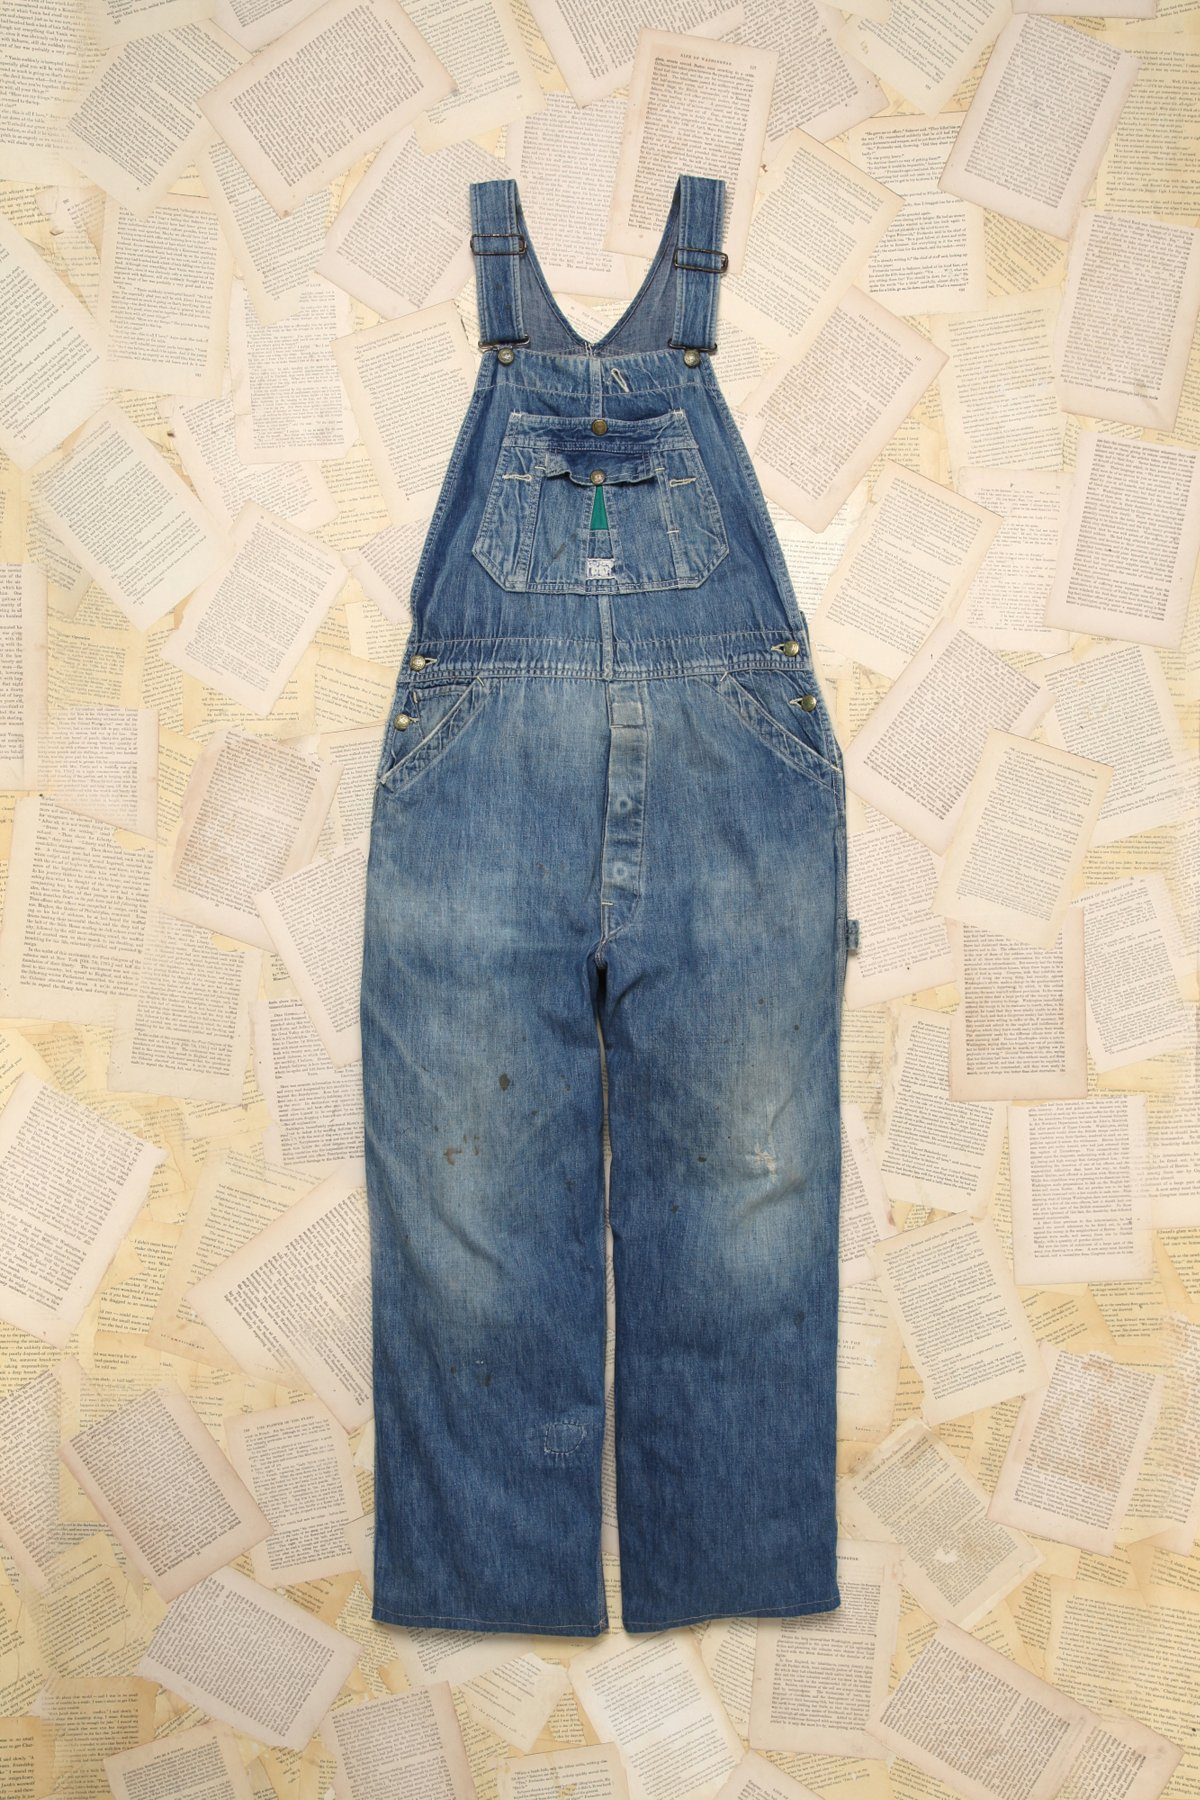 Vintage Liberty Denim Overall